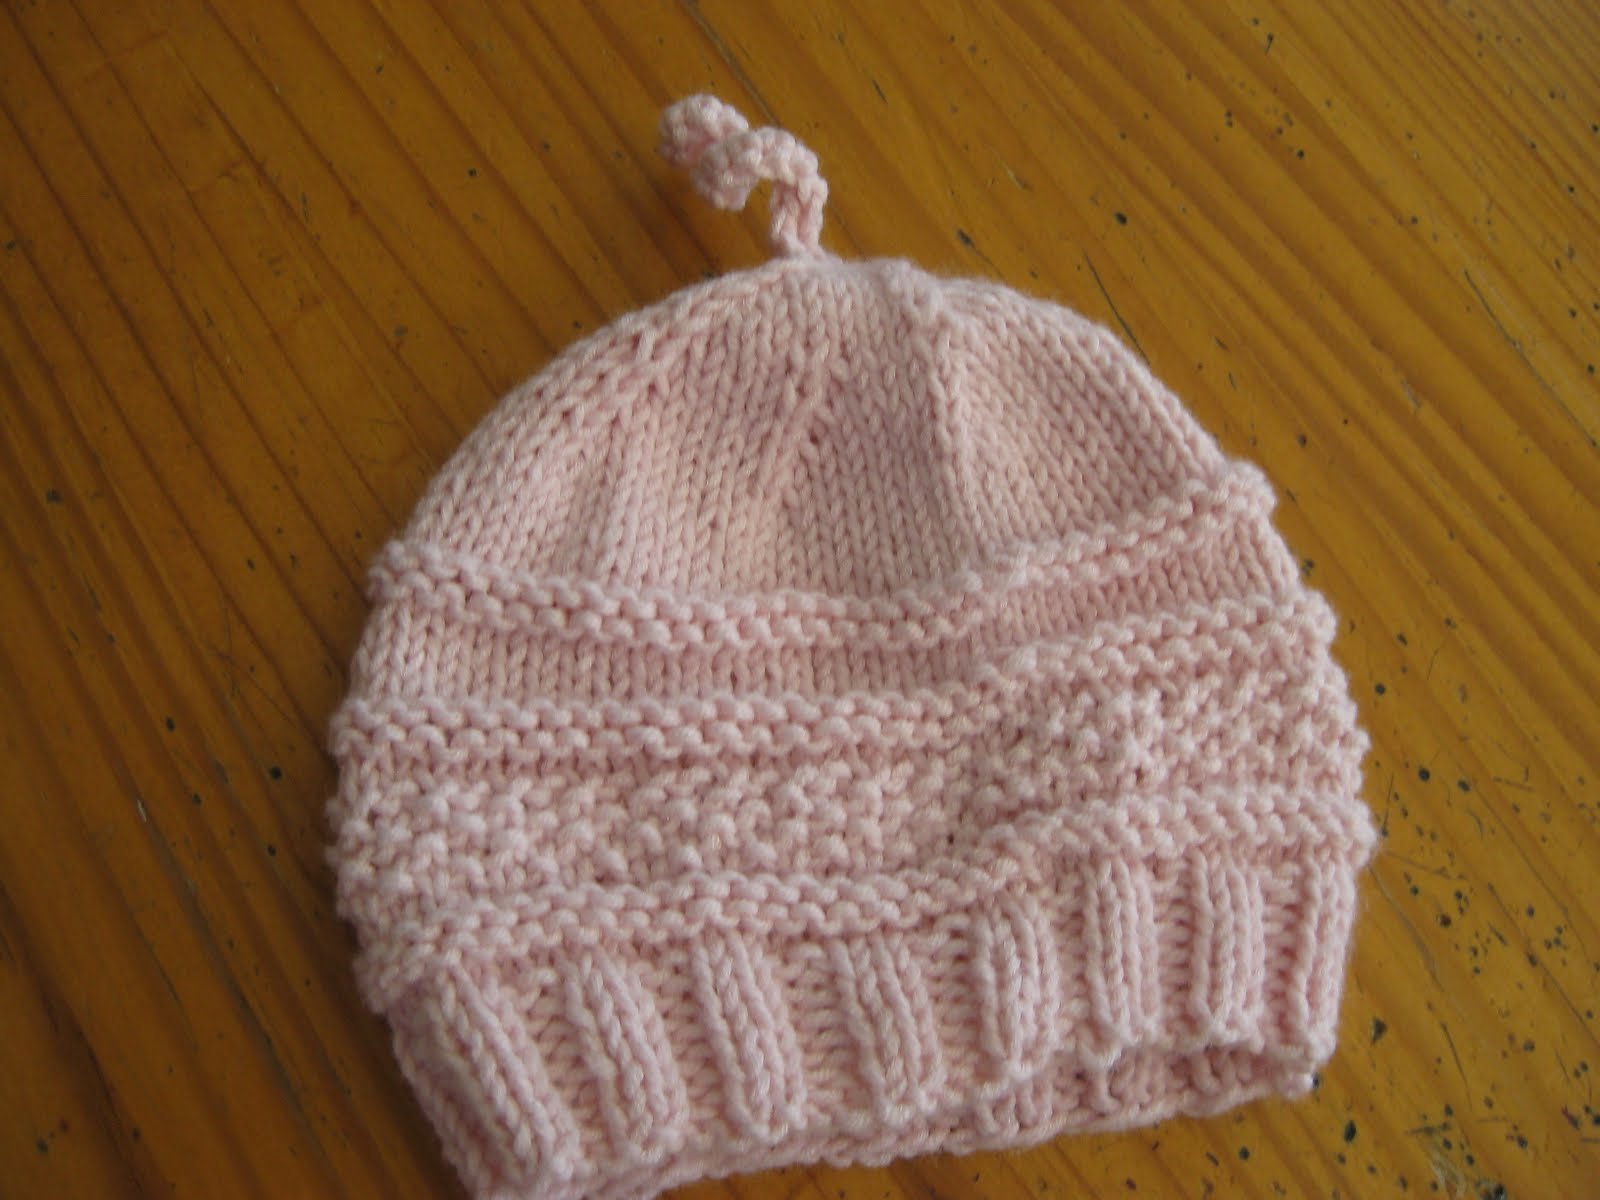 Knitting Patterns For Neonatal Babies : knitting baby hats-Knitting Gallery